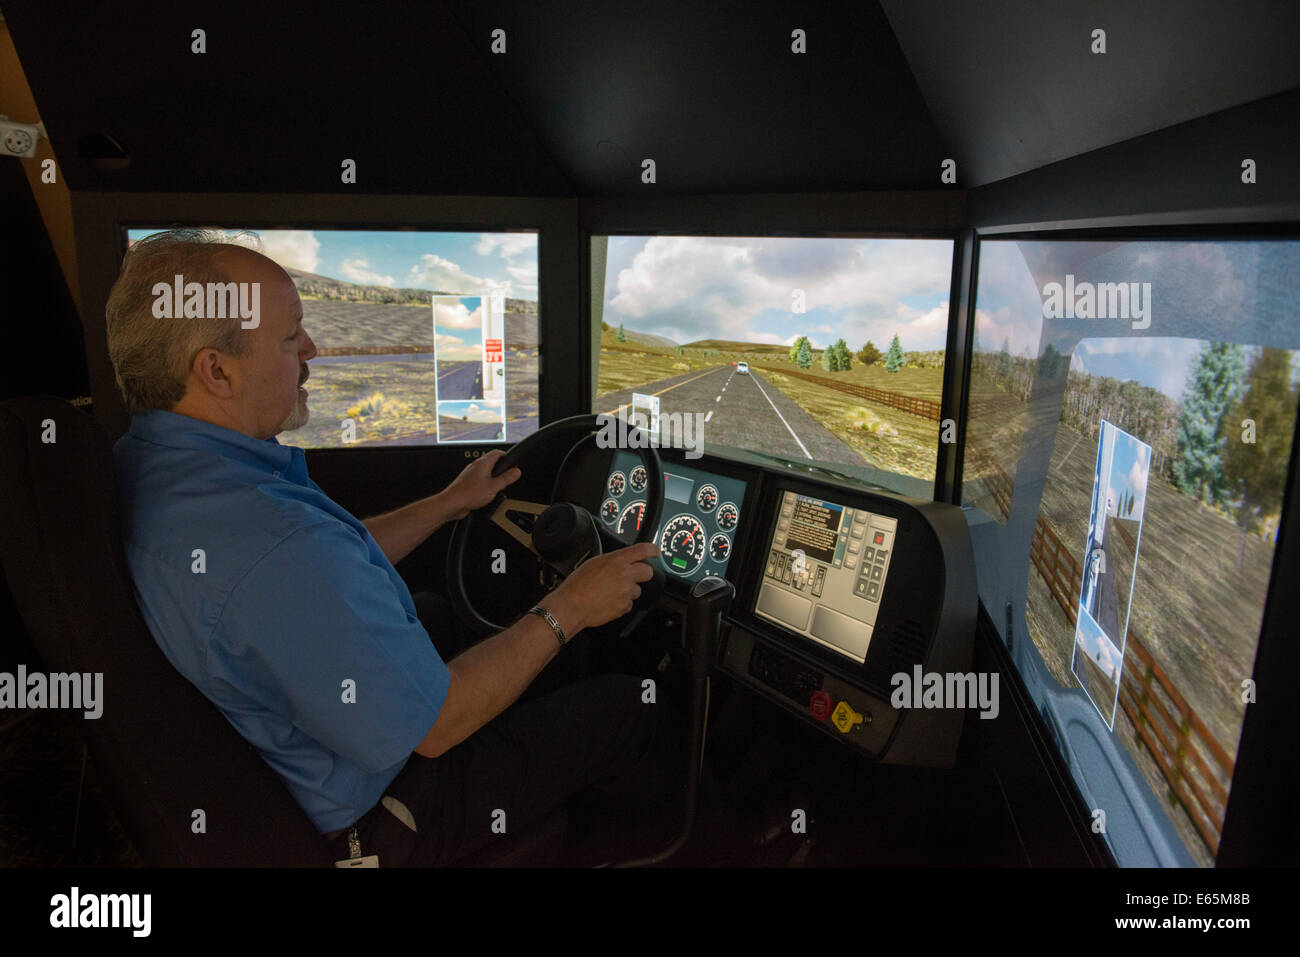 L3 Communications motion based truck driving simulator used to train truck drivers at Bozzuto's, a giant food - Stock Image